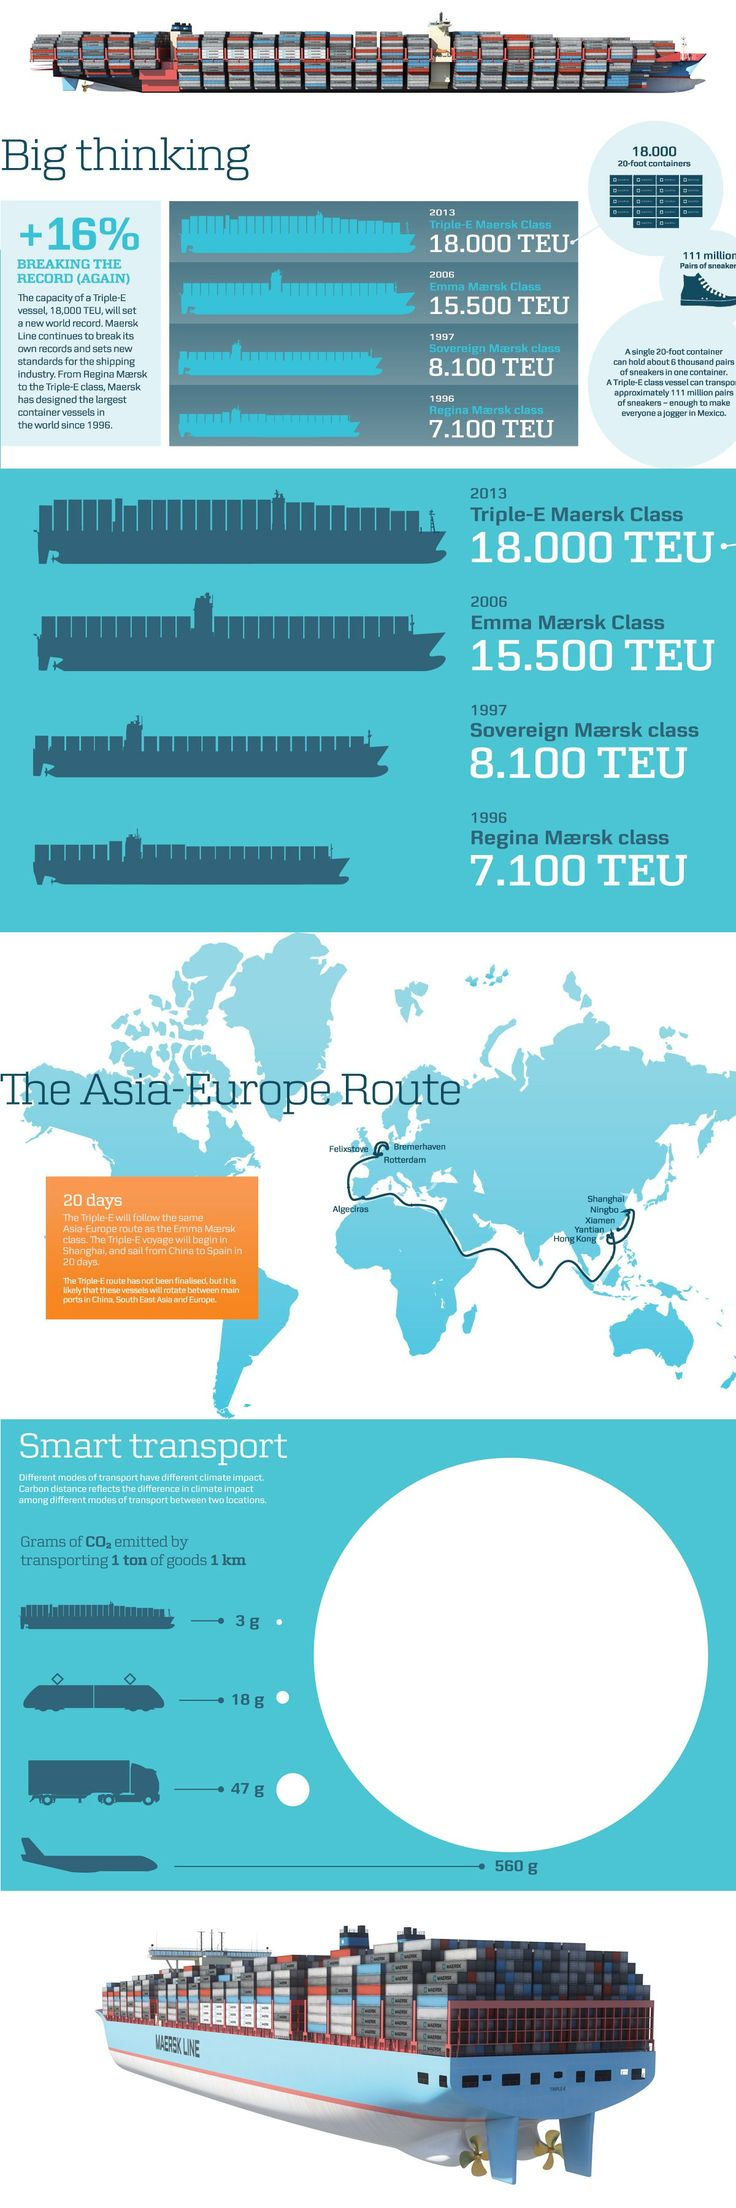 Infographic-maersk-triple-e.jpg 1,200×3,600 pixels--  --------------------------------------------------  How huge this ship must be???? Designed for the efficiency in burning fuel, this ship if achieves this in reality shall literailly change the cargo shipping sector forever!!!!  I remember seeing the scene in the film Titanic that shows the ships piston engines!!! I am wondering what kind of engines must this ship have!!!!